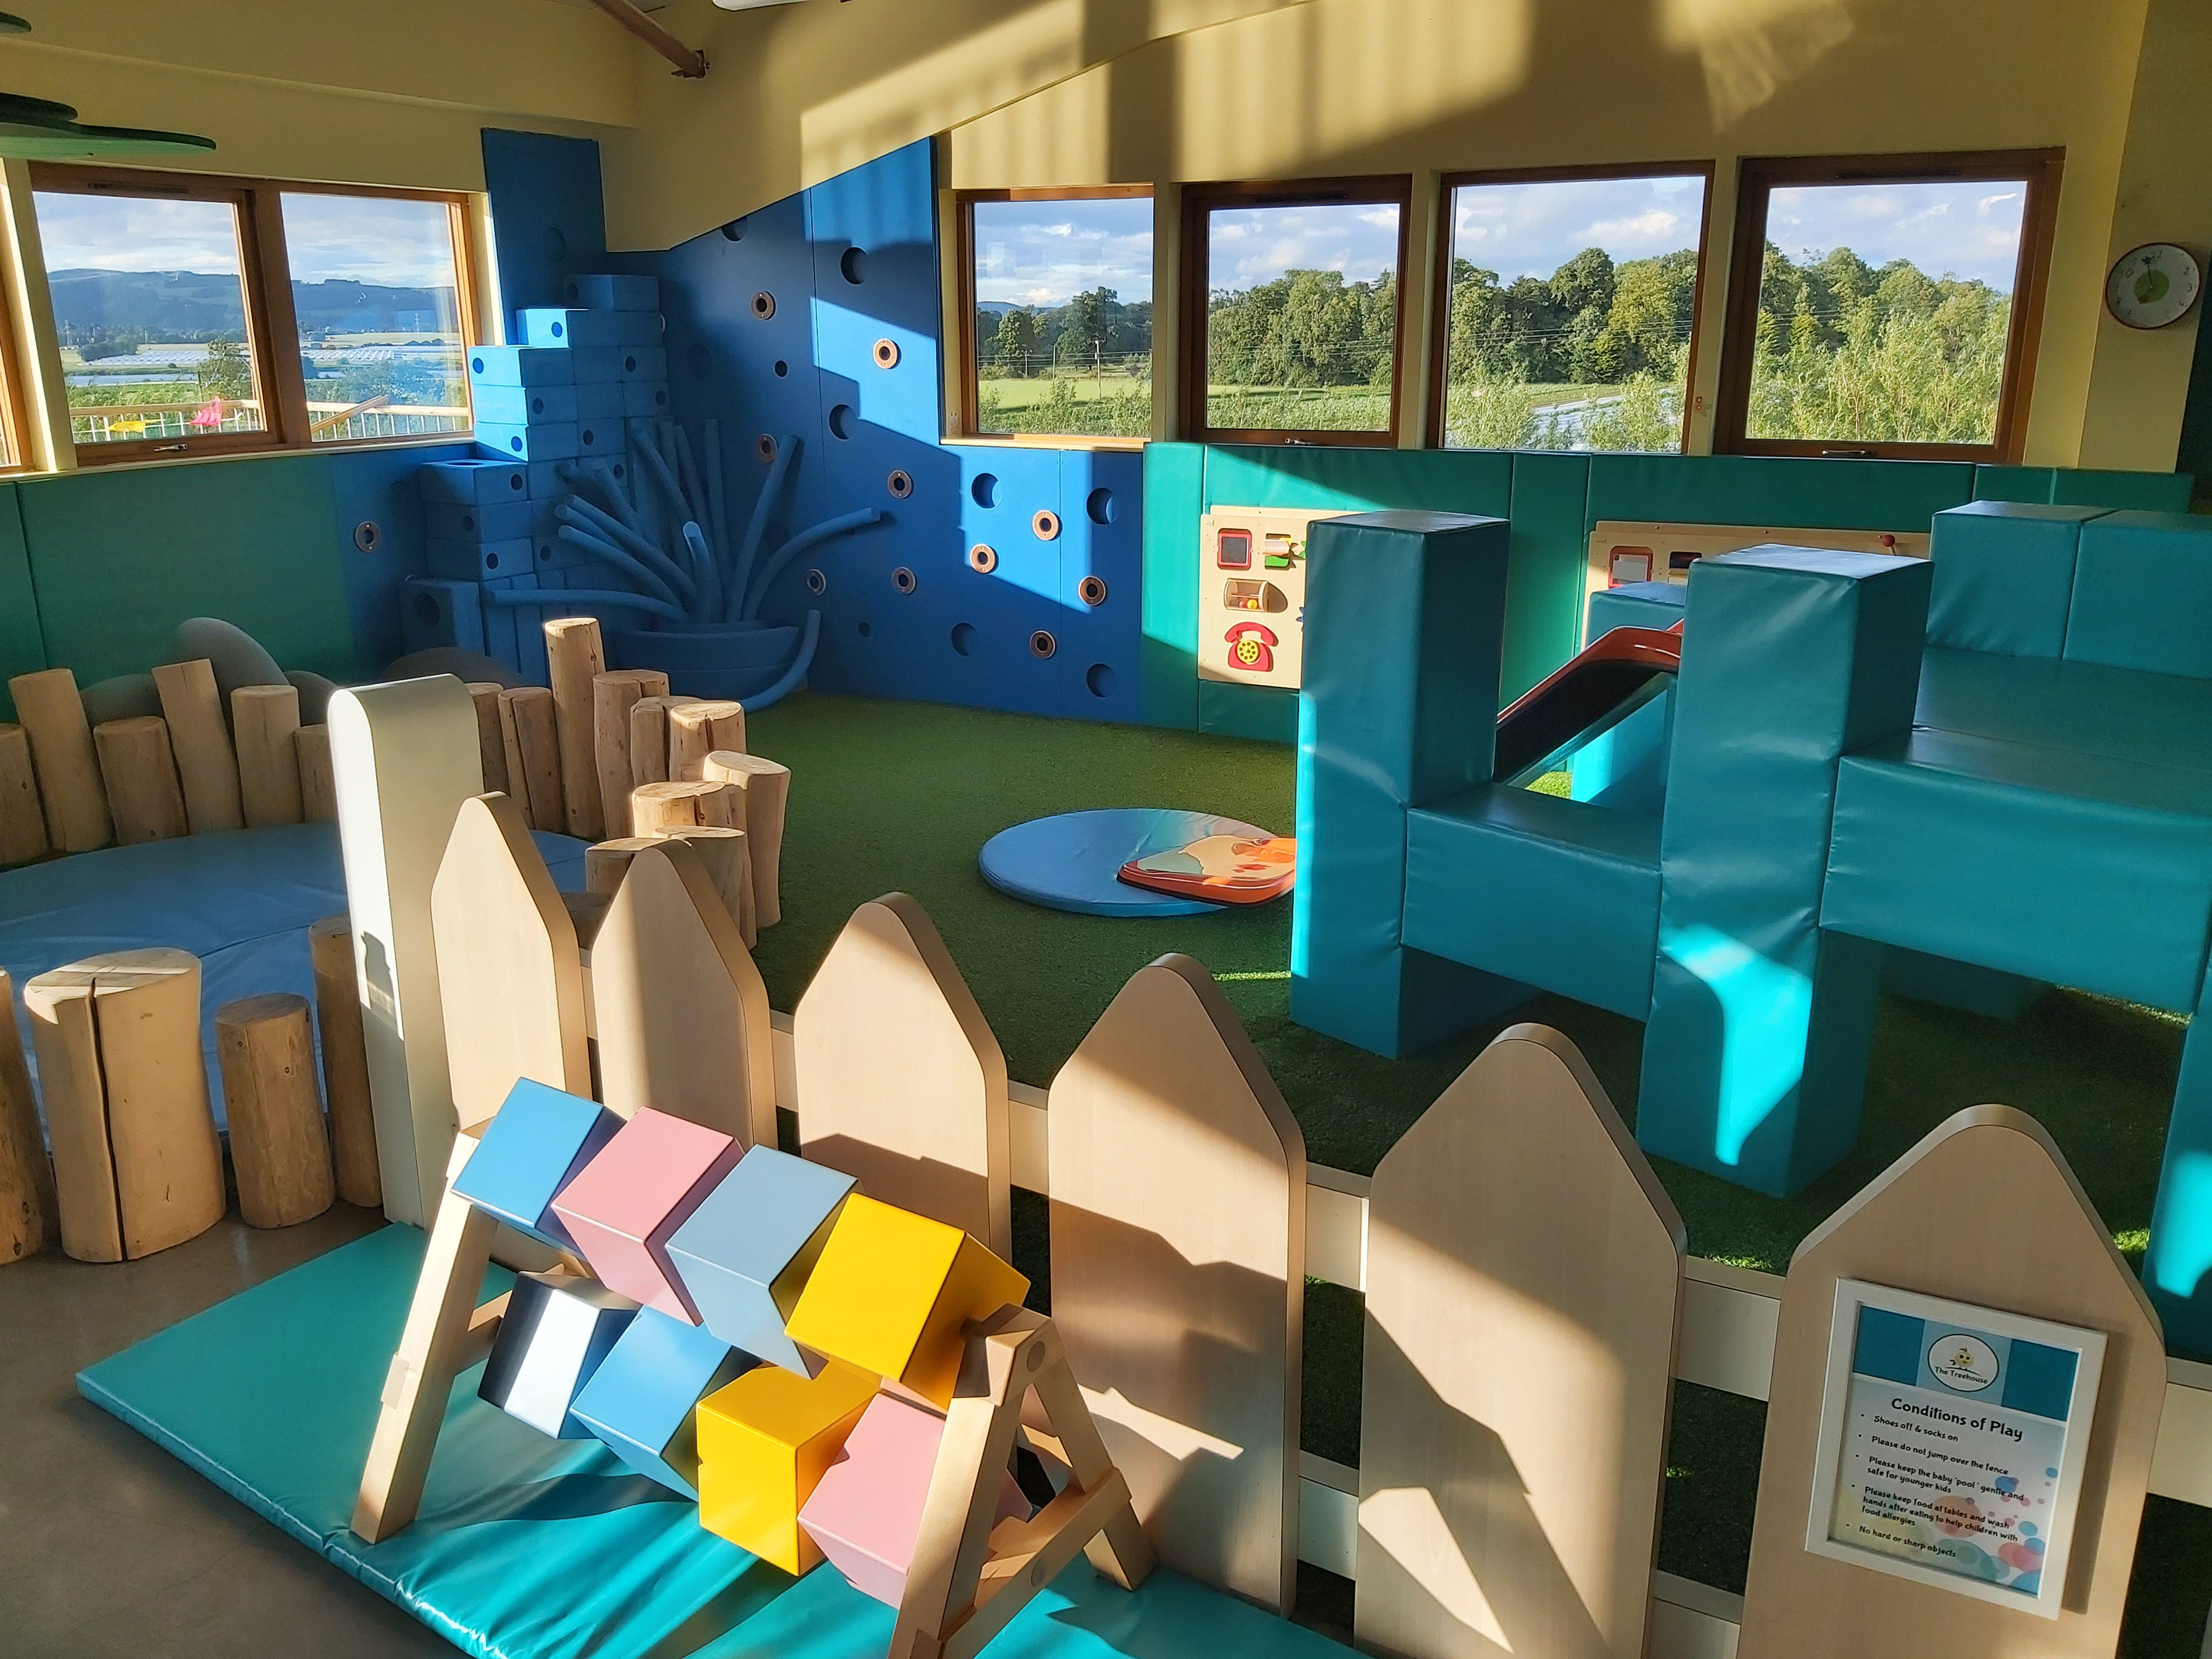 2hr Treehouse Play Session